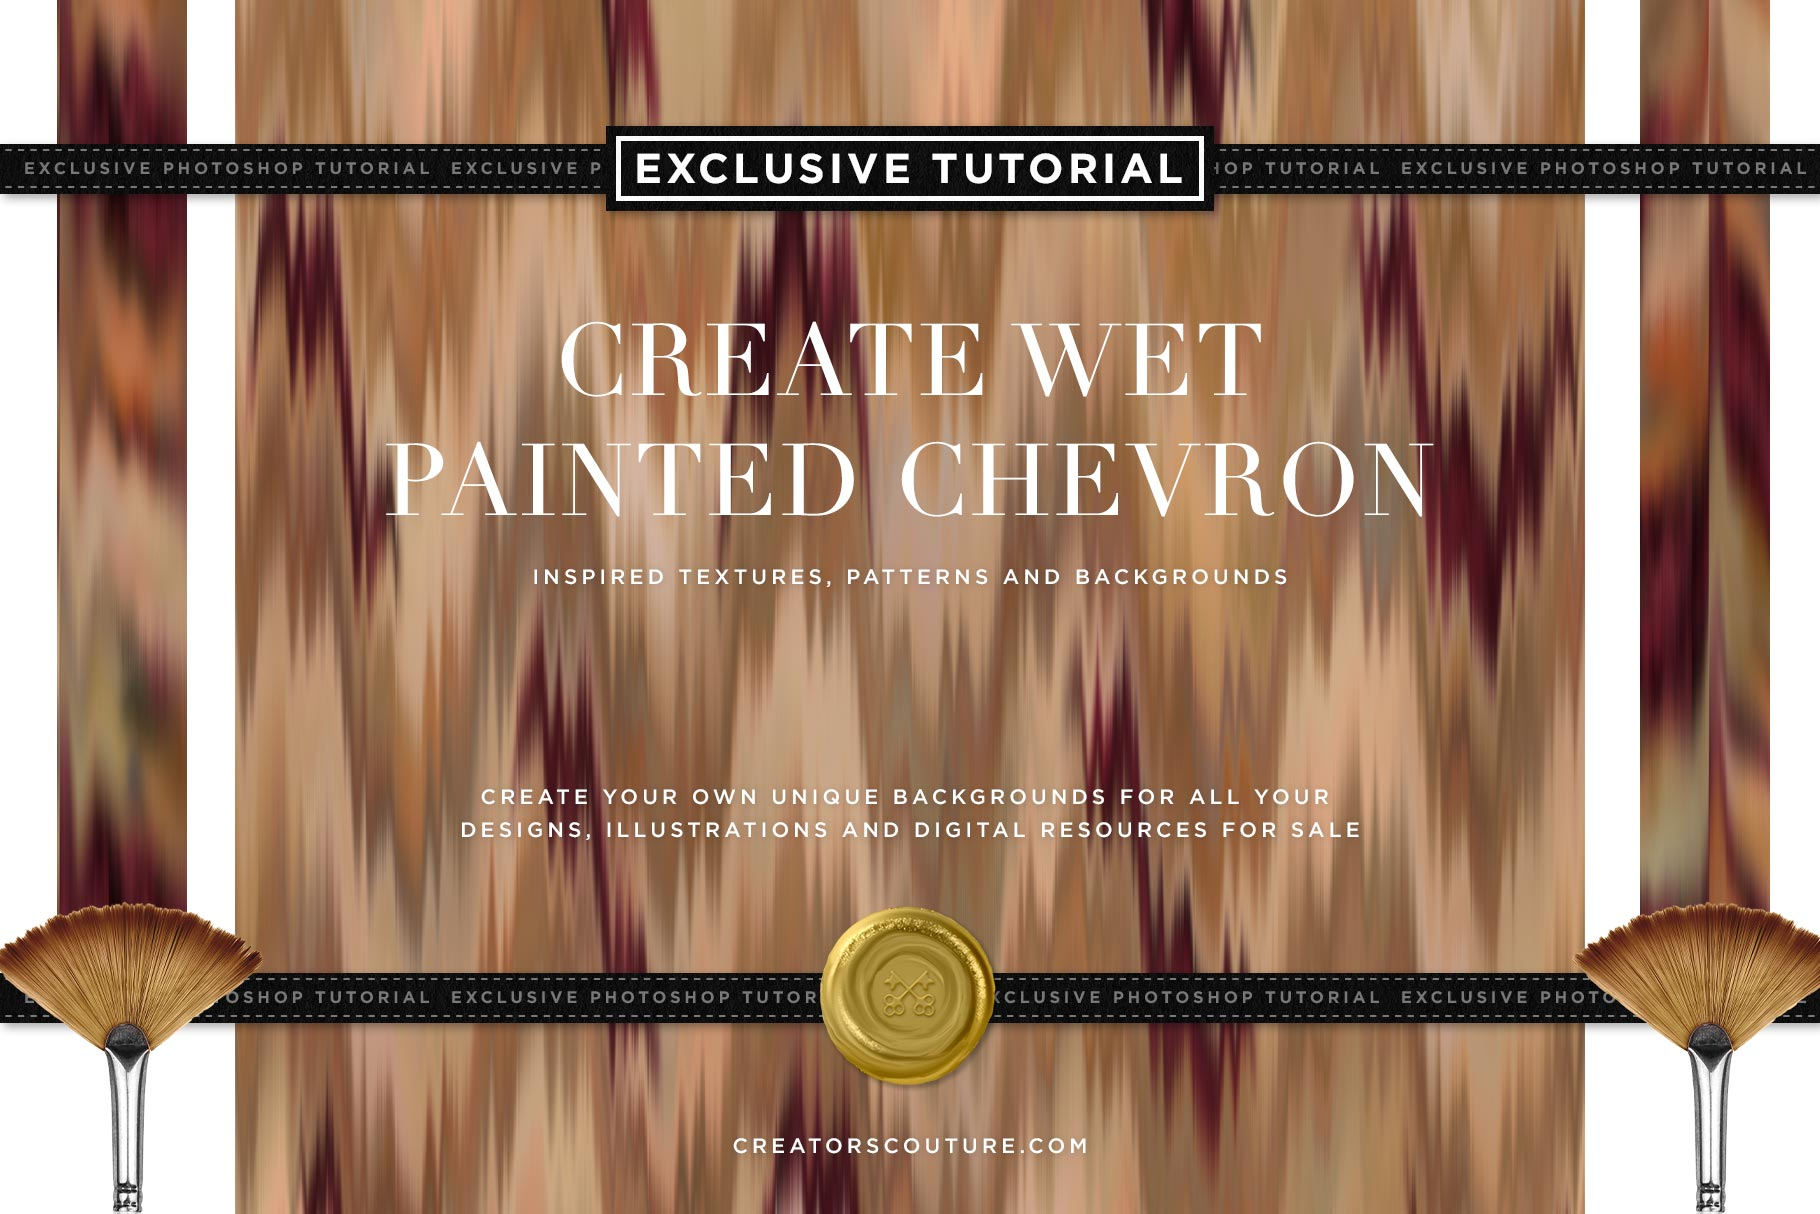 Exclusive Tutorial: Create Wet Painted Chevron Inspired Textures, Patterns and Backgrounds - Creators Couture